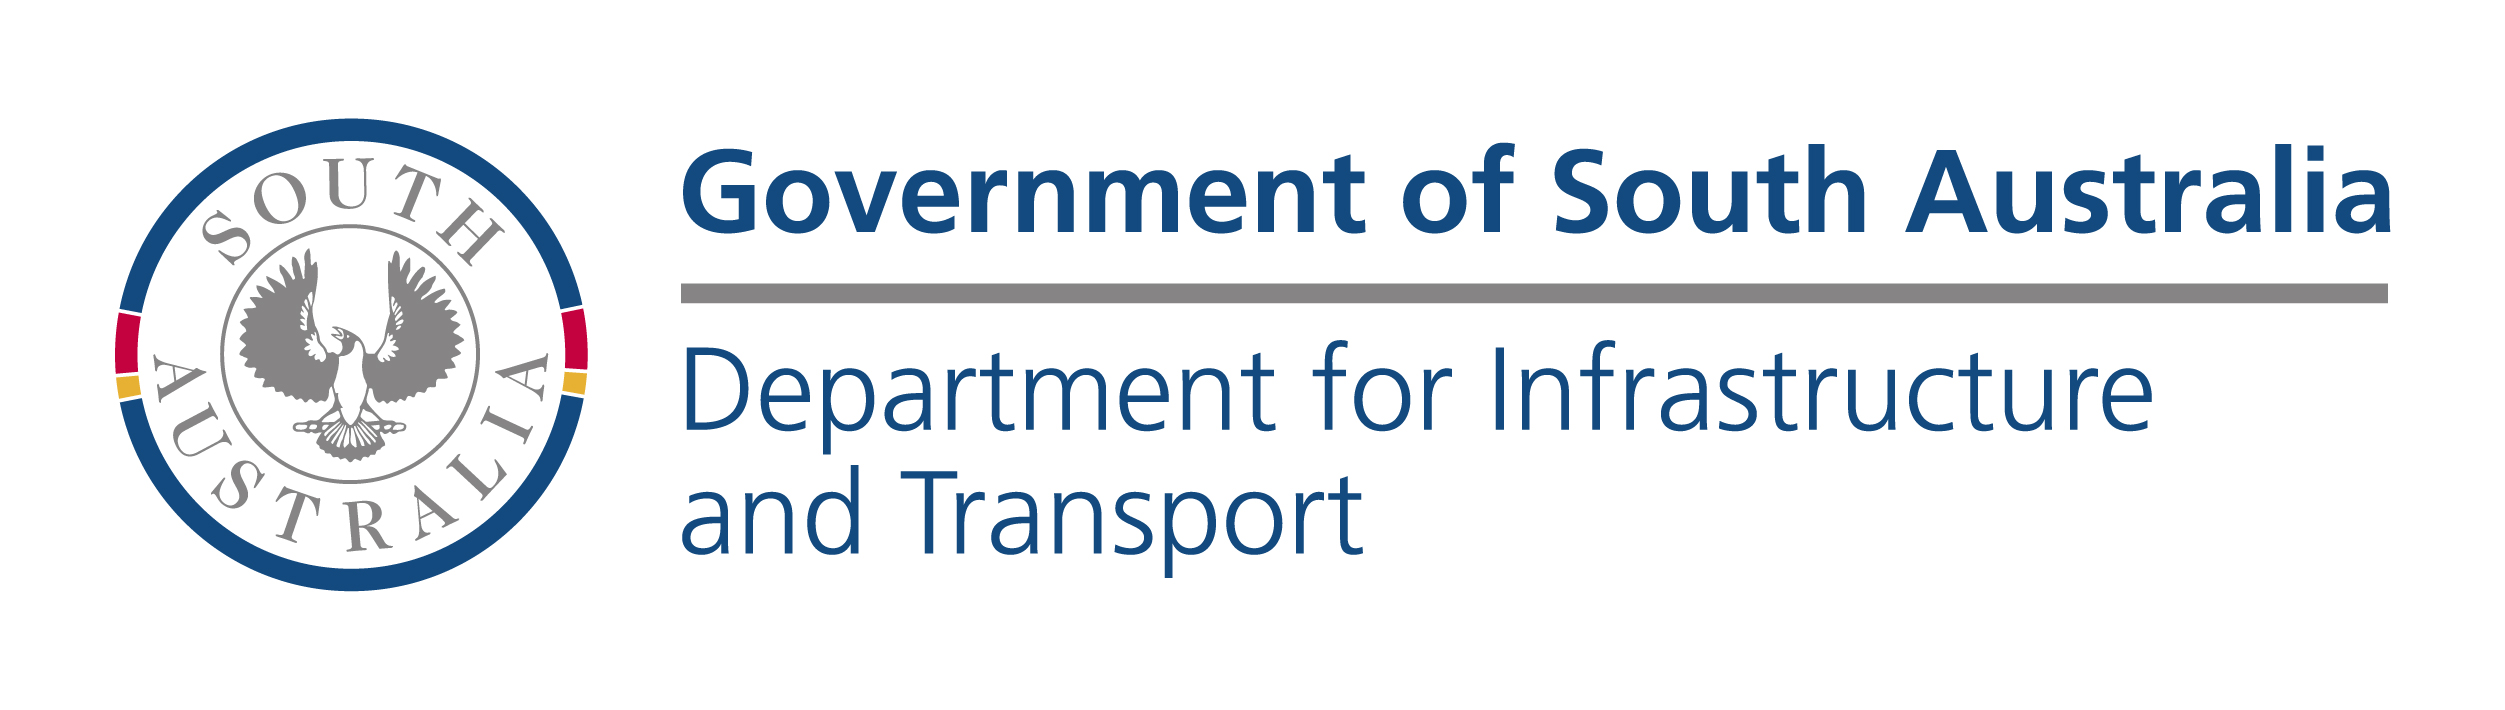 department-of-planning-transport-and-infrastructure